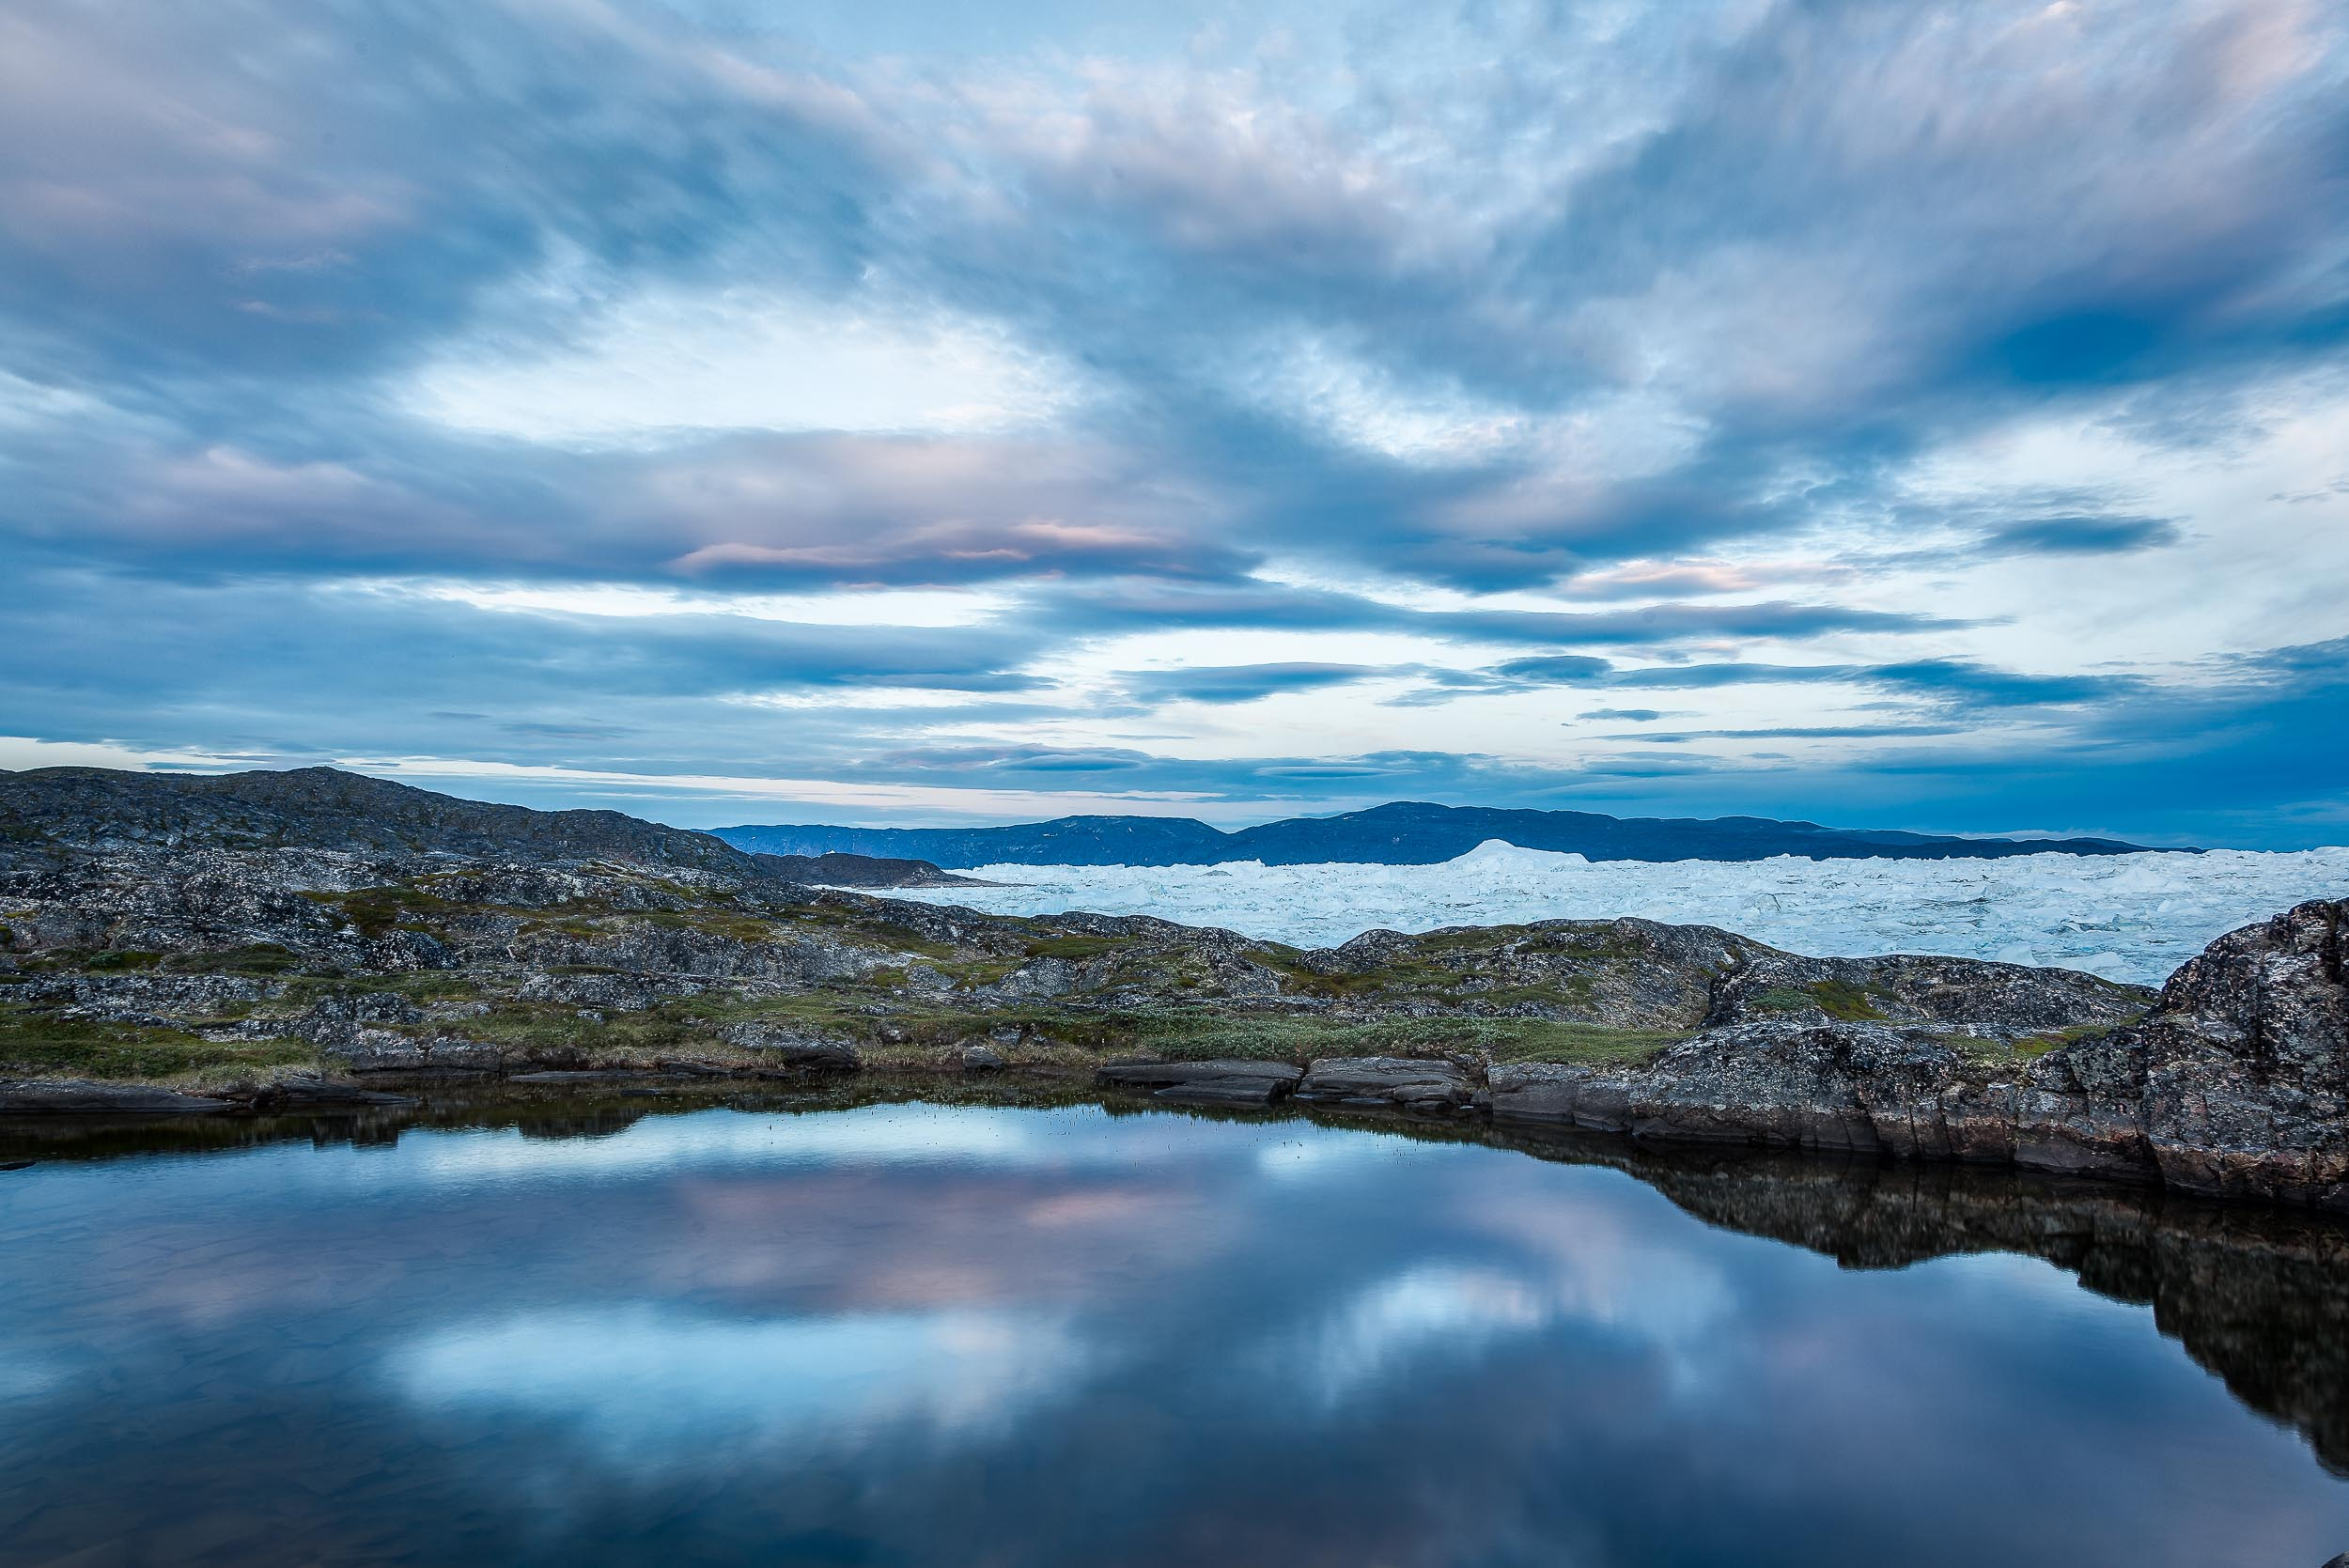 Safe waters    on the edge of the massive    Ilulissat Icefjord    in    Greenland   .